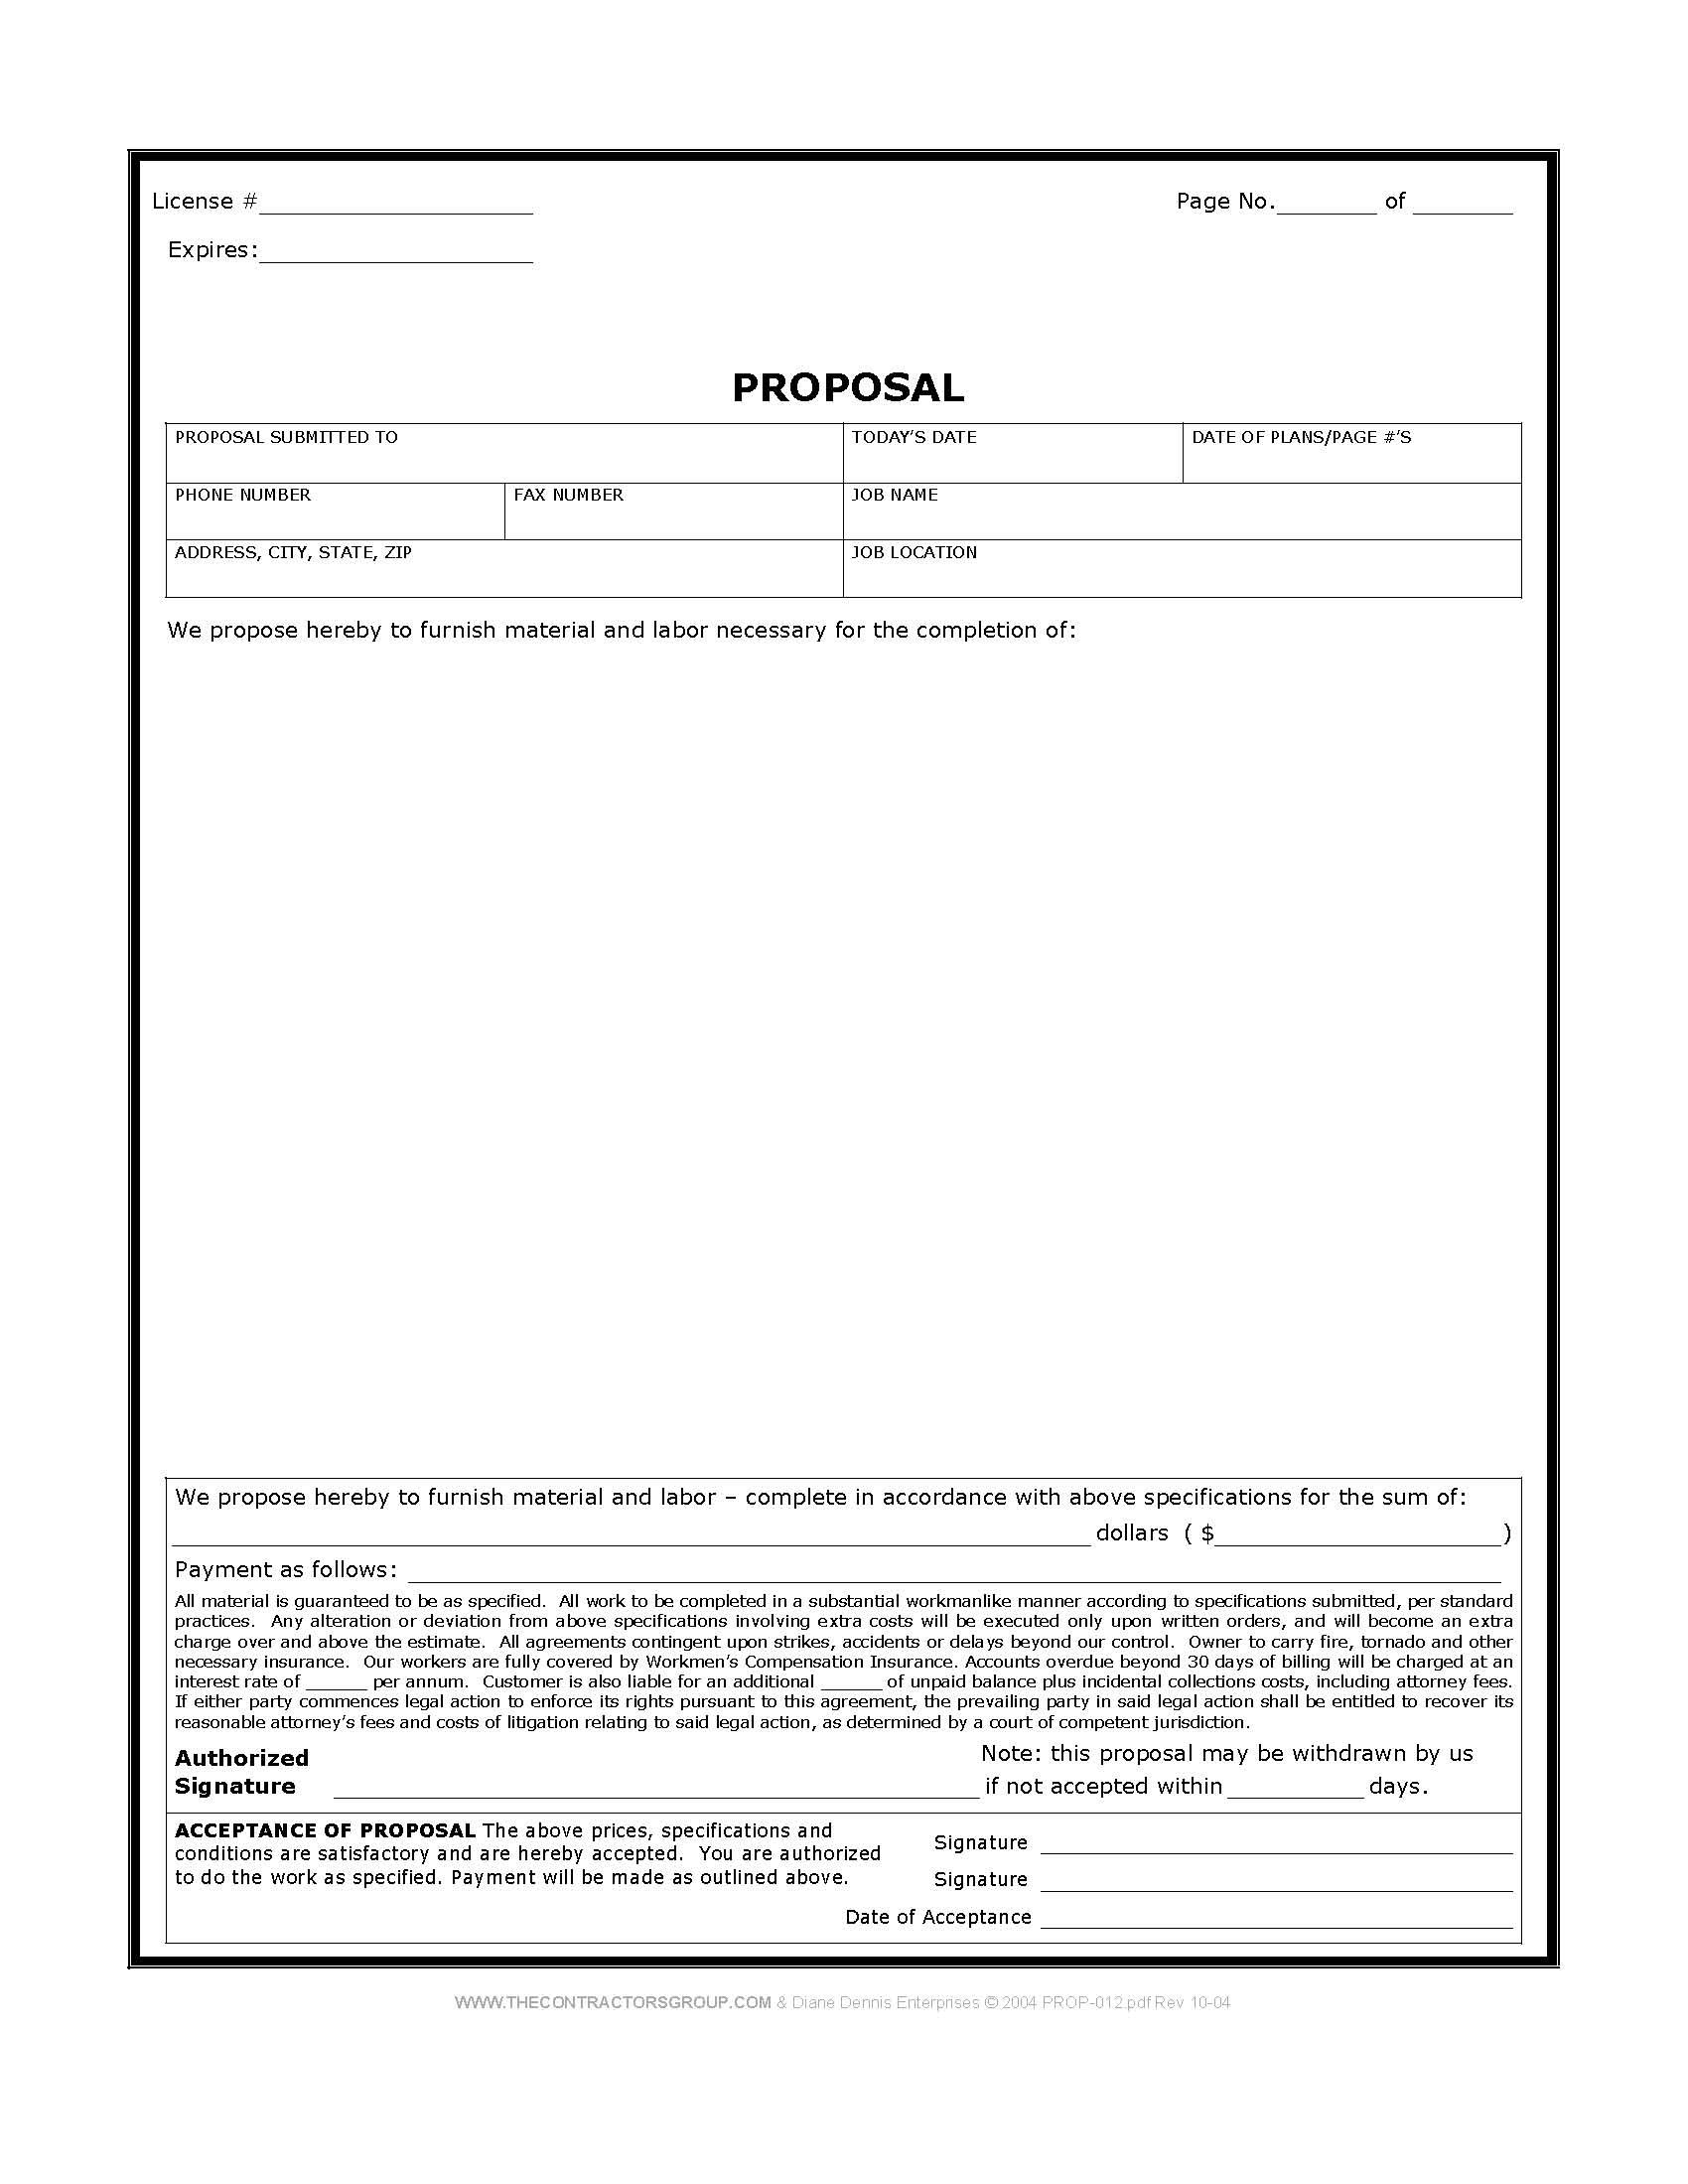 Free Print Contractor Proposal Forms | Construction Proposal Form for Paint Proposal Template Word Doc